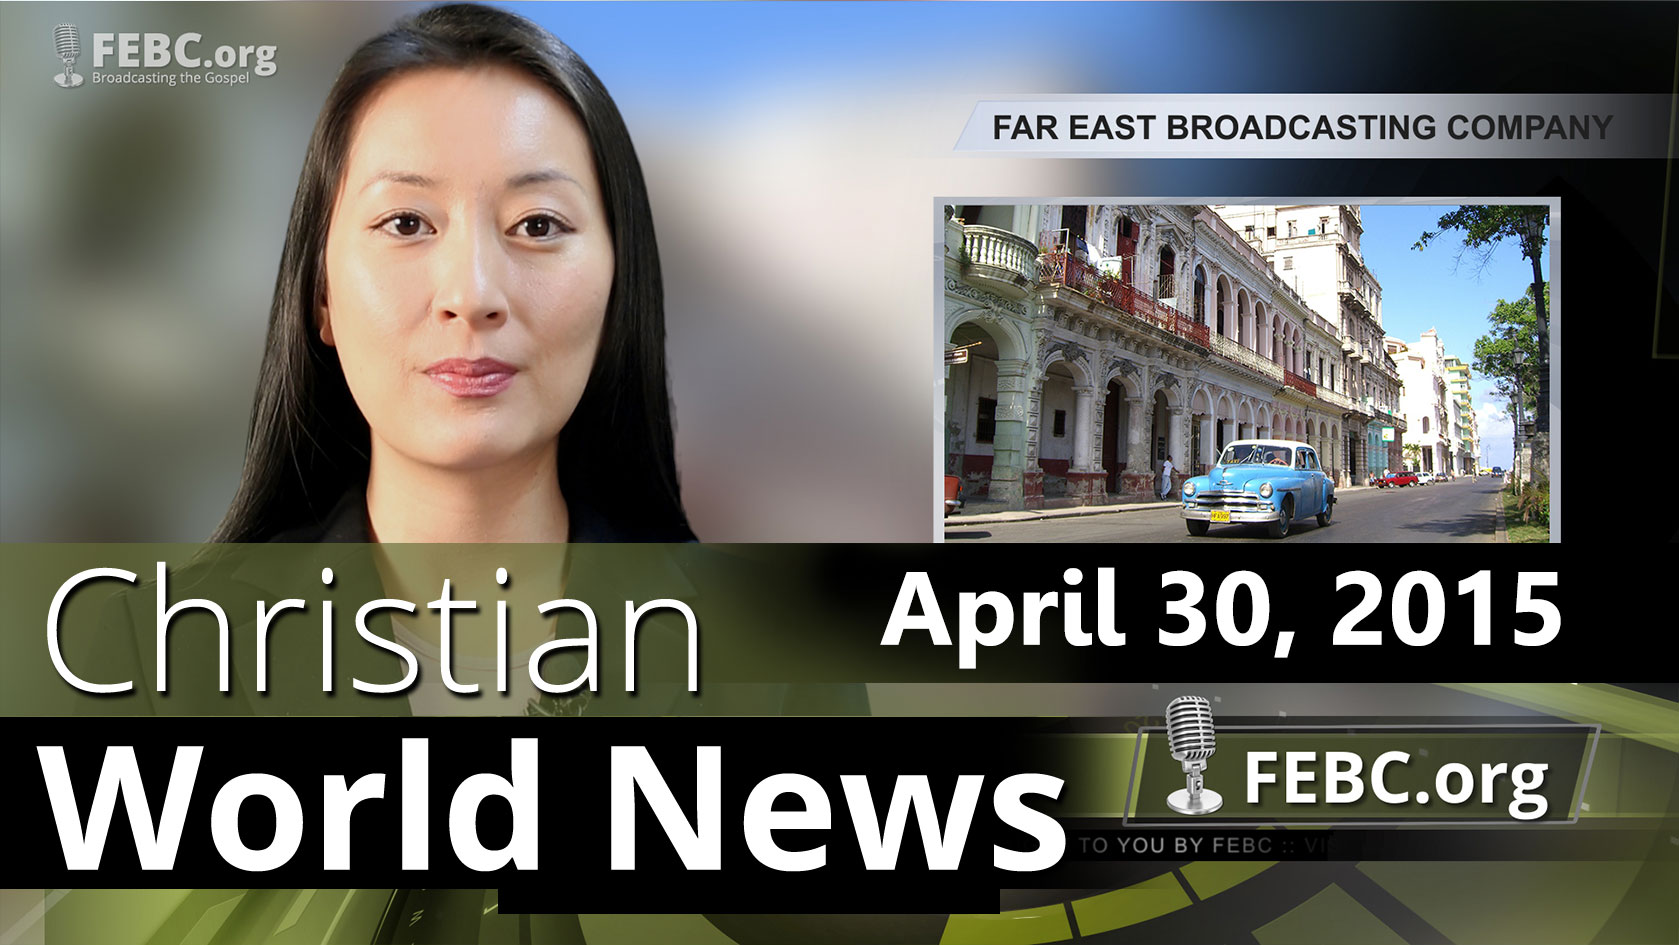 Christian World News: April 30, 2015